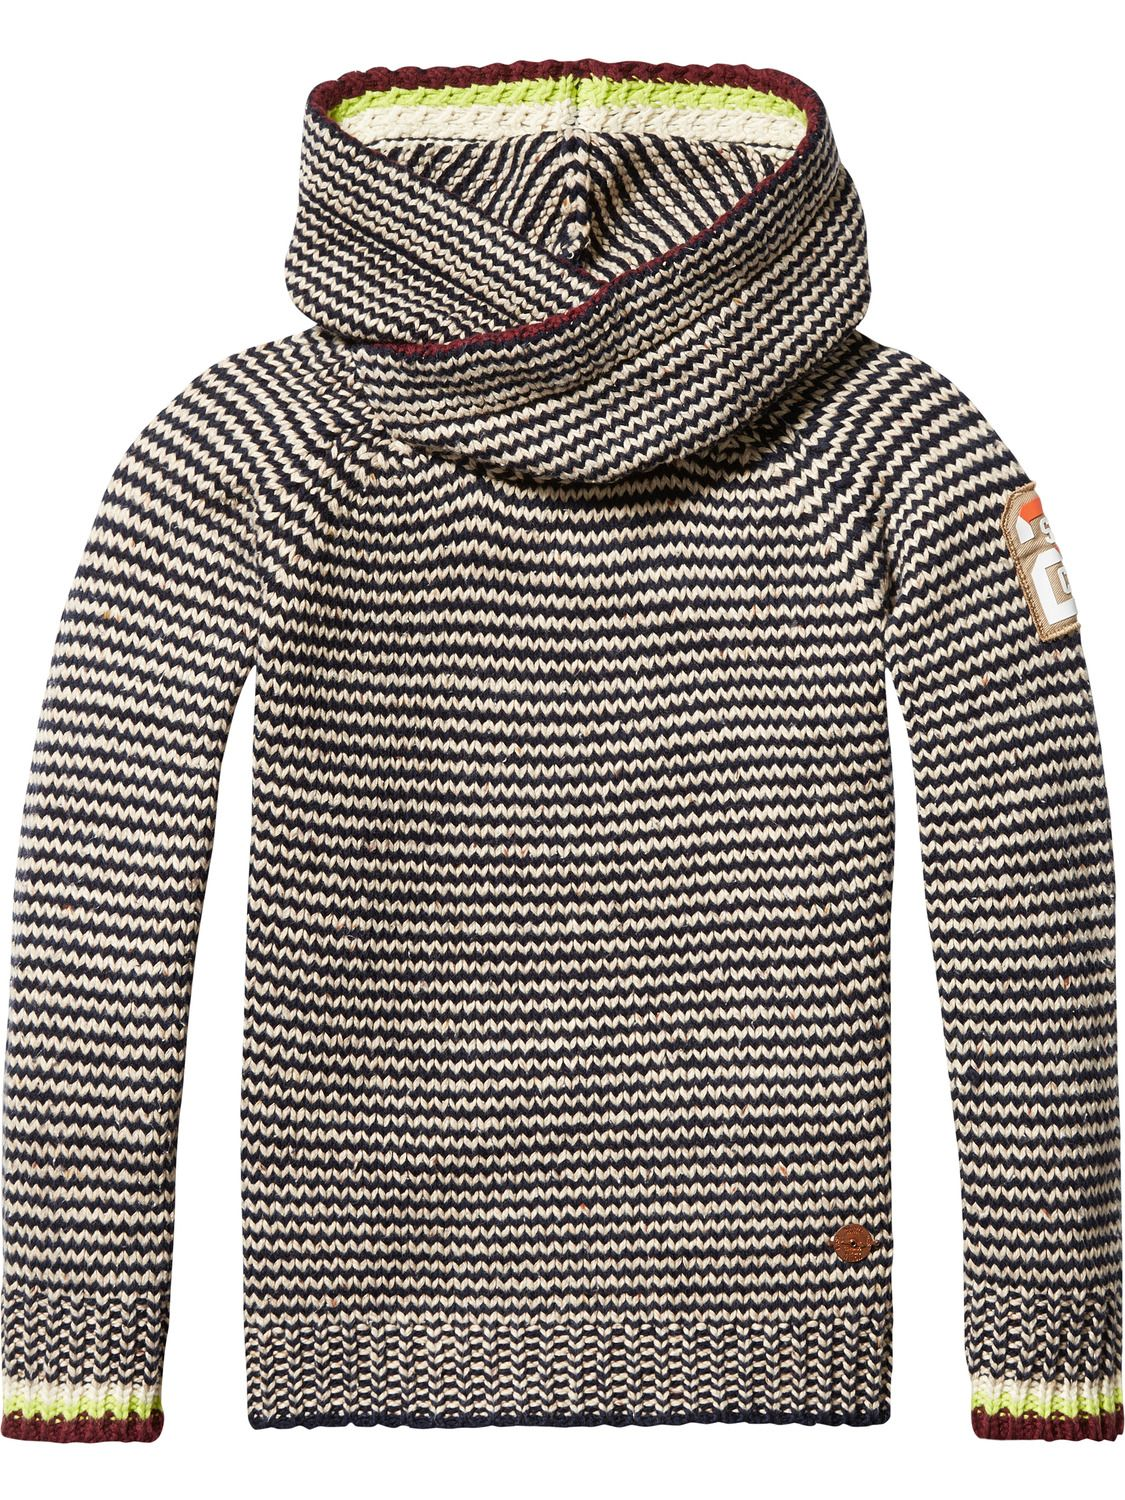 76e96d0d0 Scotch & Soda knitted hoodie. Love the overlapping on the neck ...